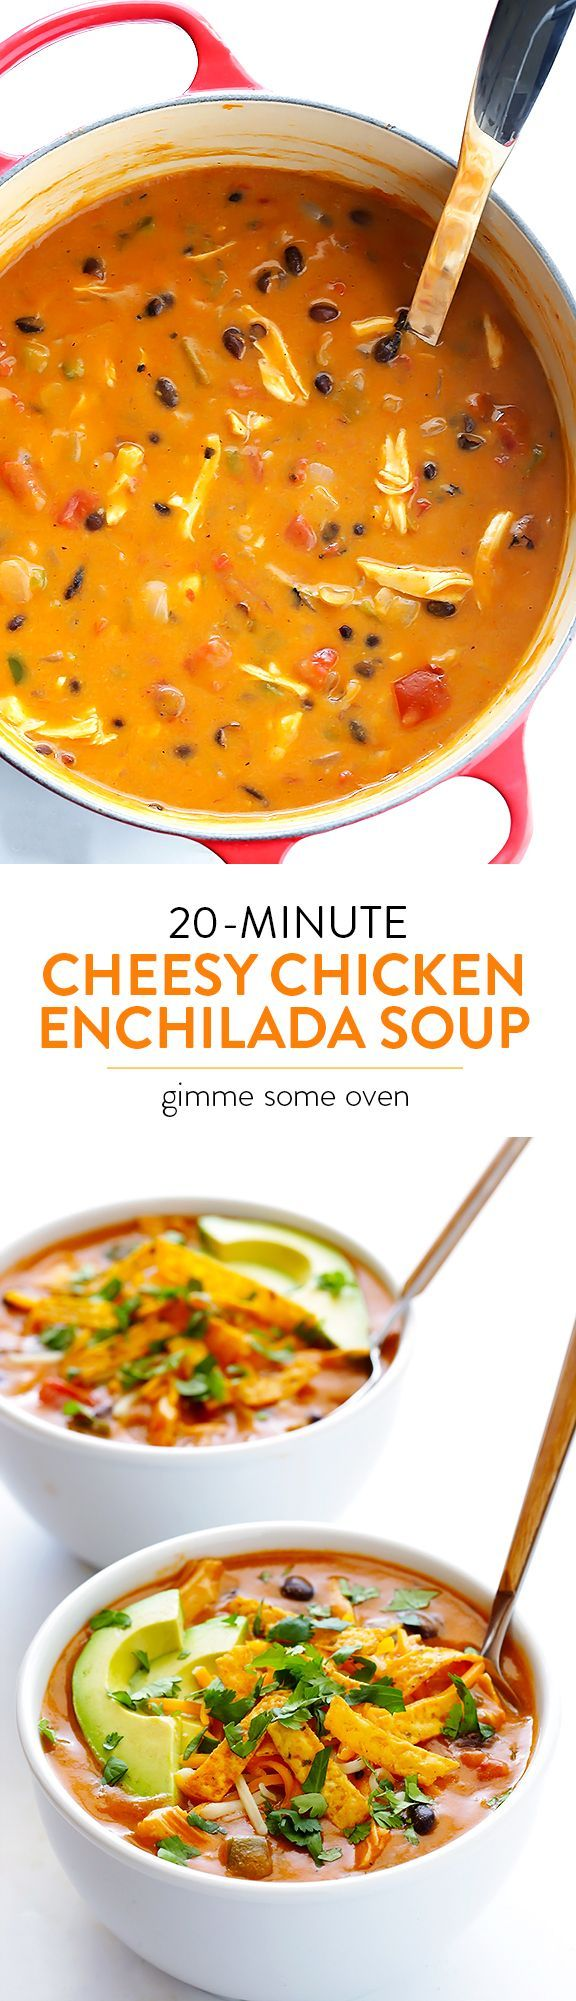 This delicious and flavorful soup is super-easy to make, and it's ready to go in about 20 minutes! Even better!!   gimmesomeoven